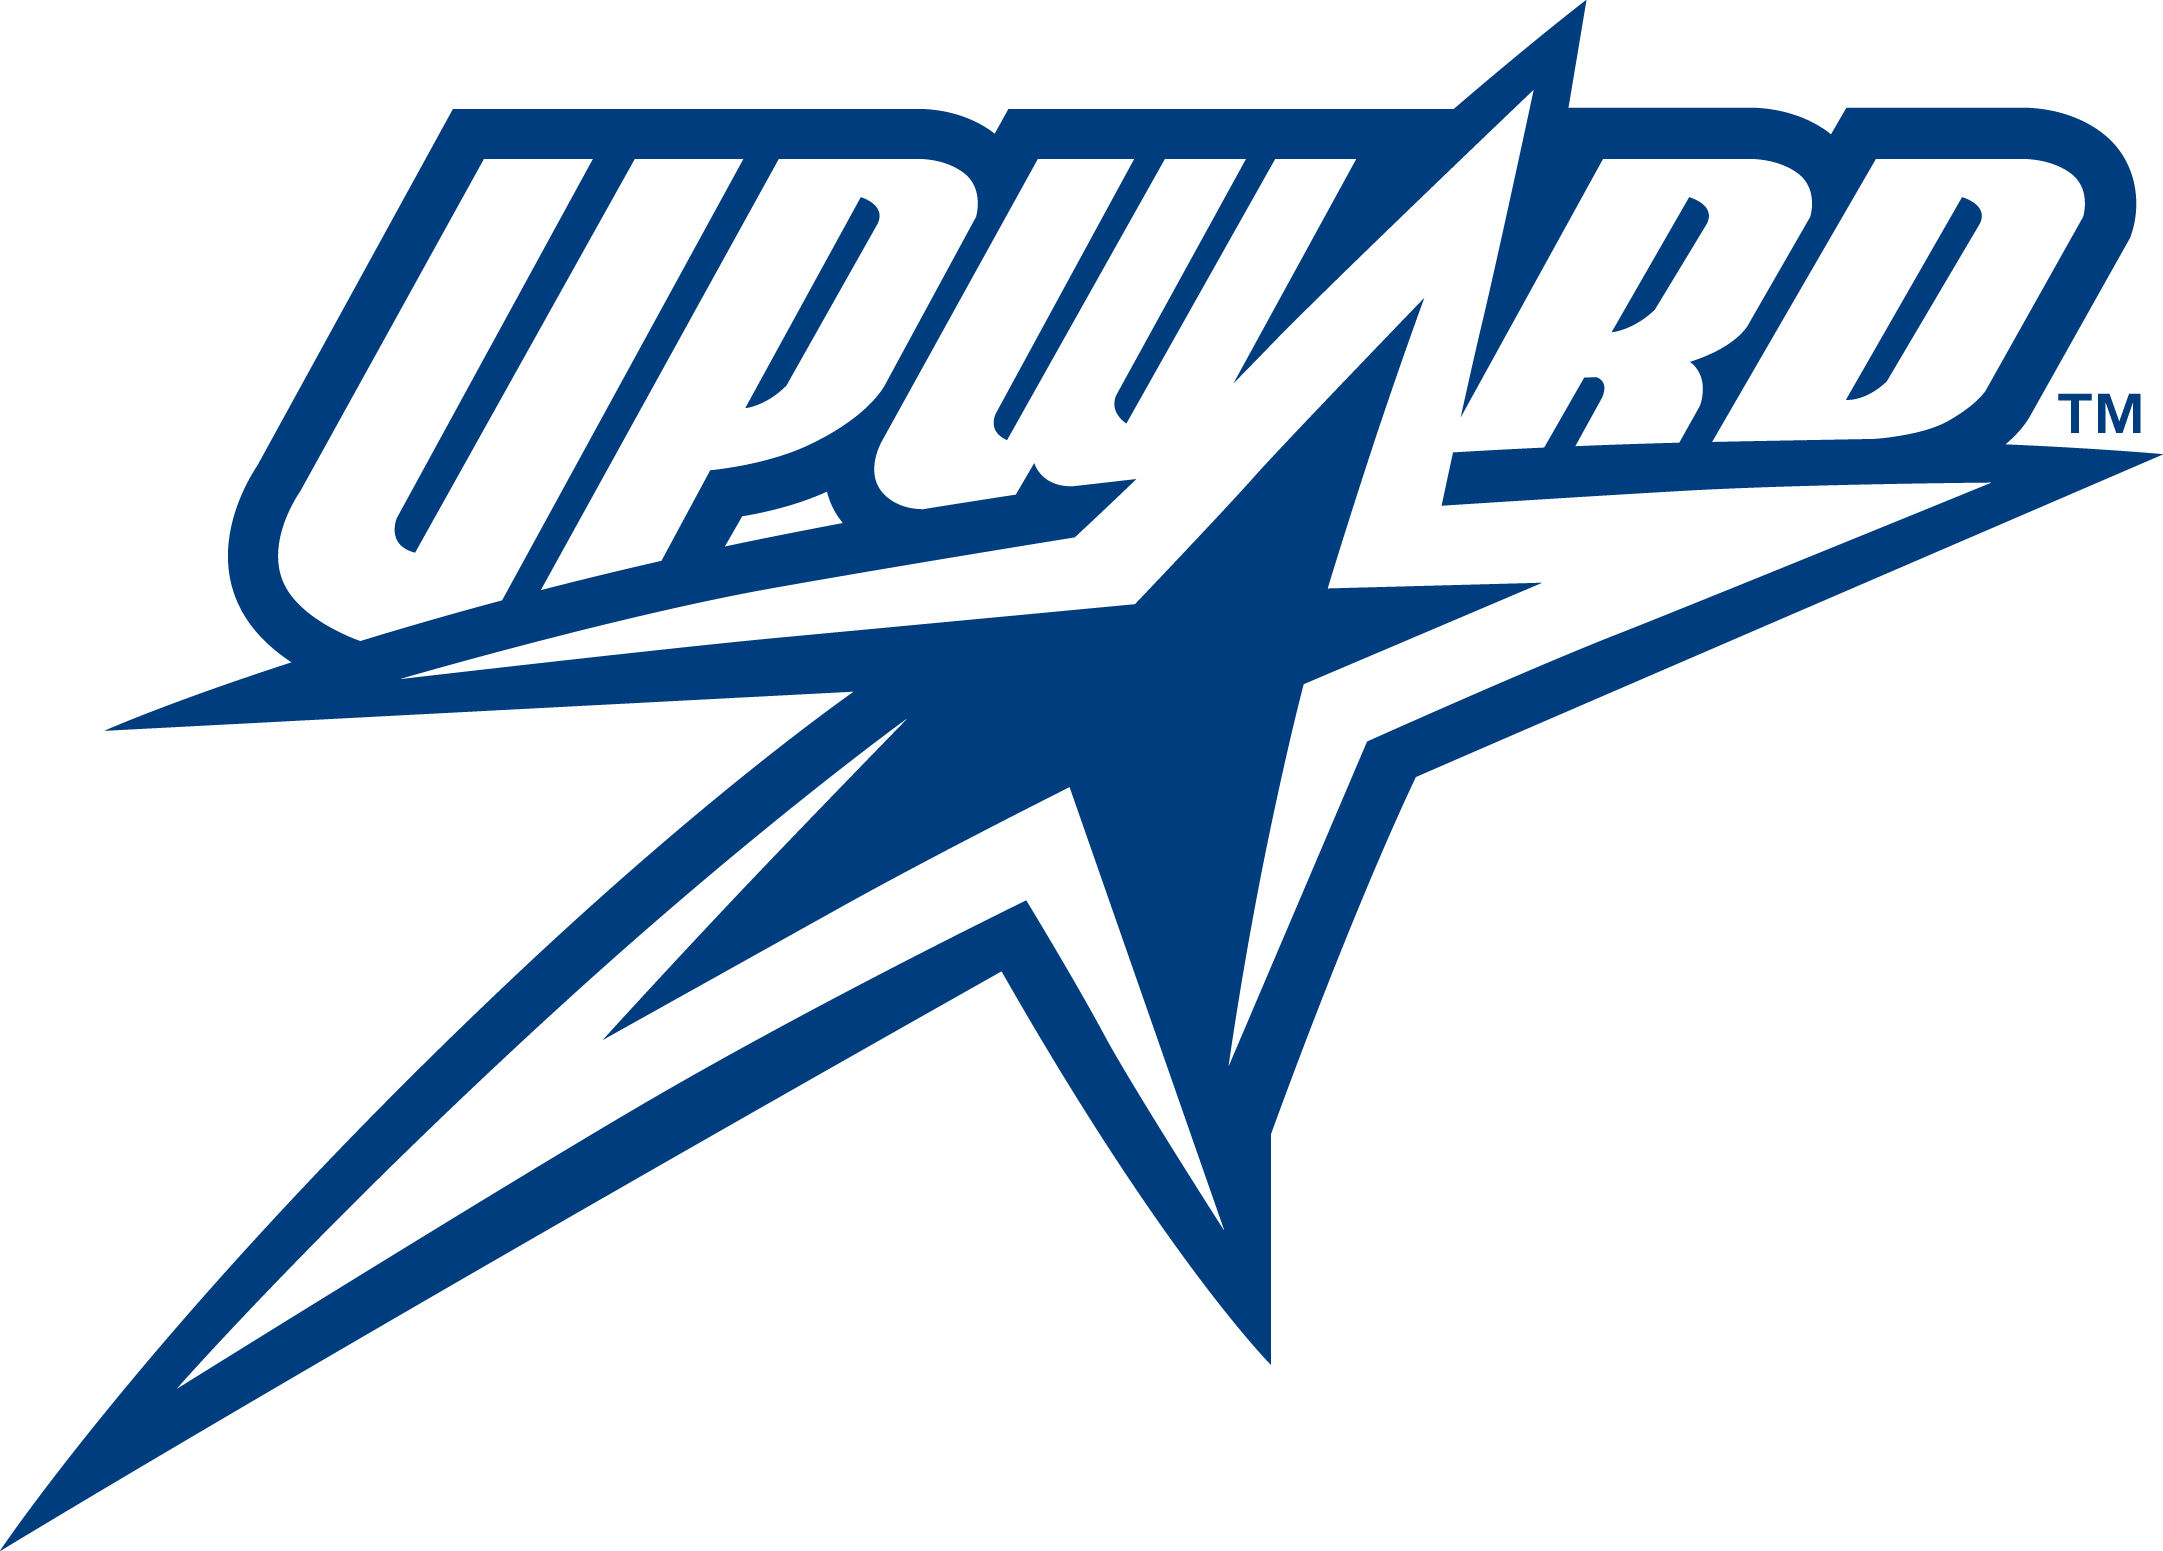 upward sports new hope umc